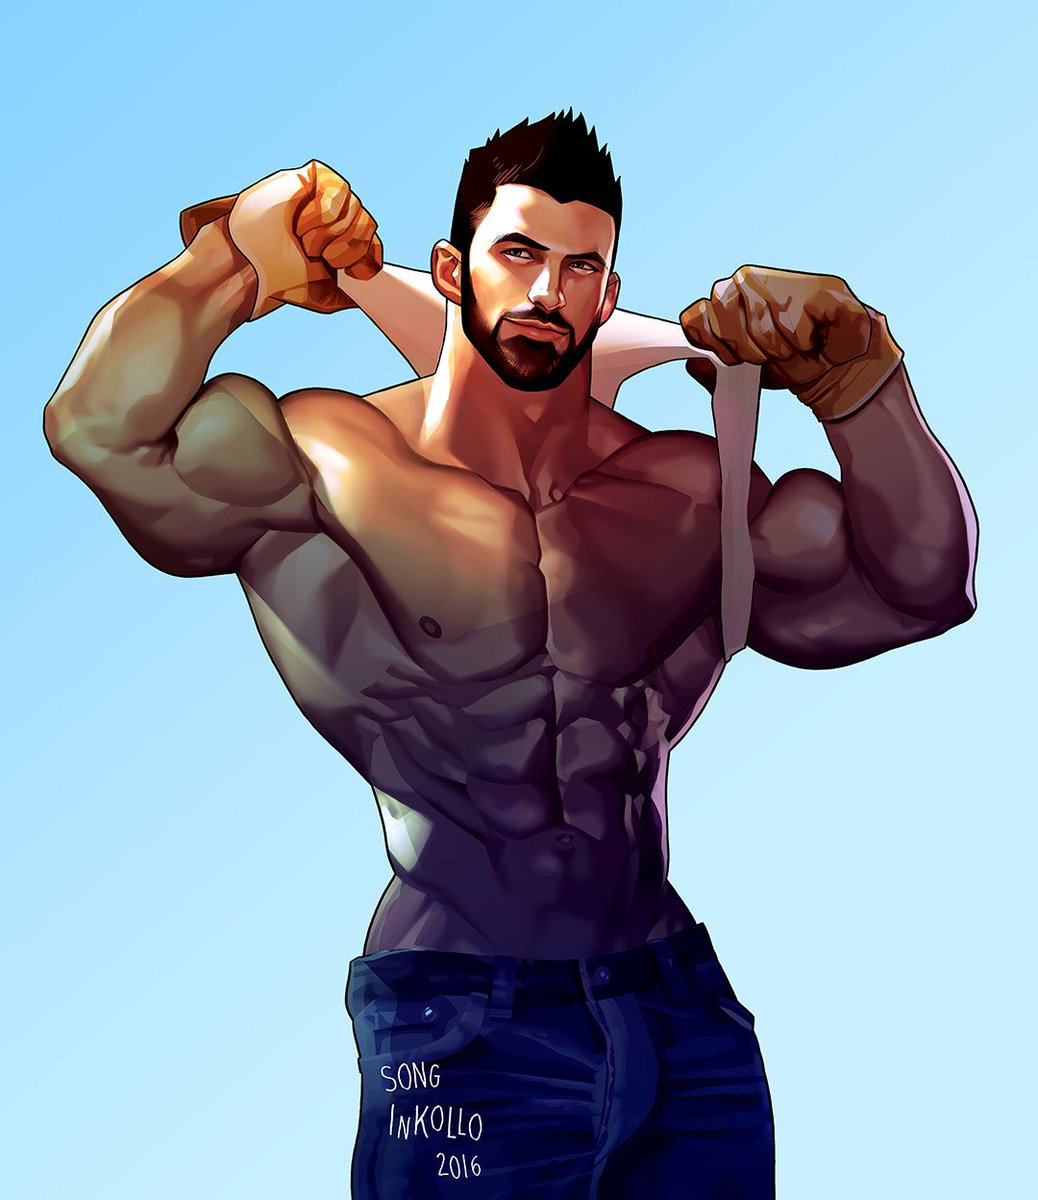 comics cartoon Muscle gay